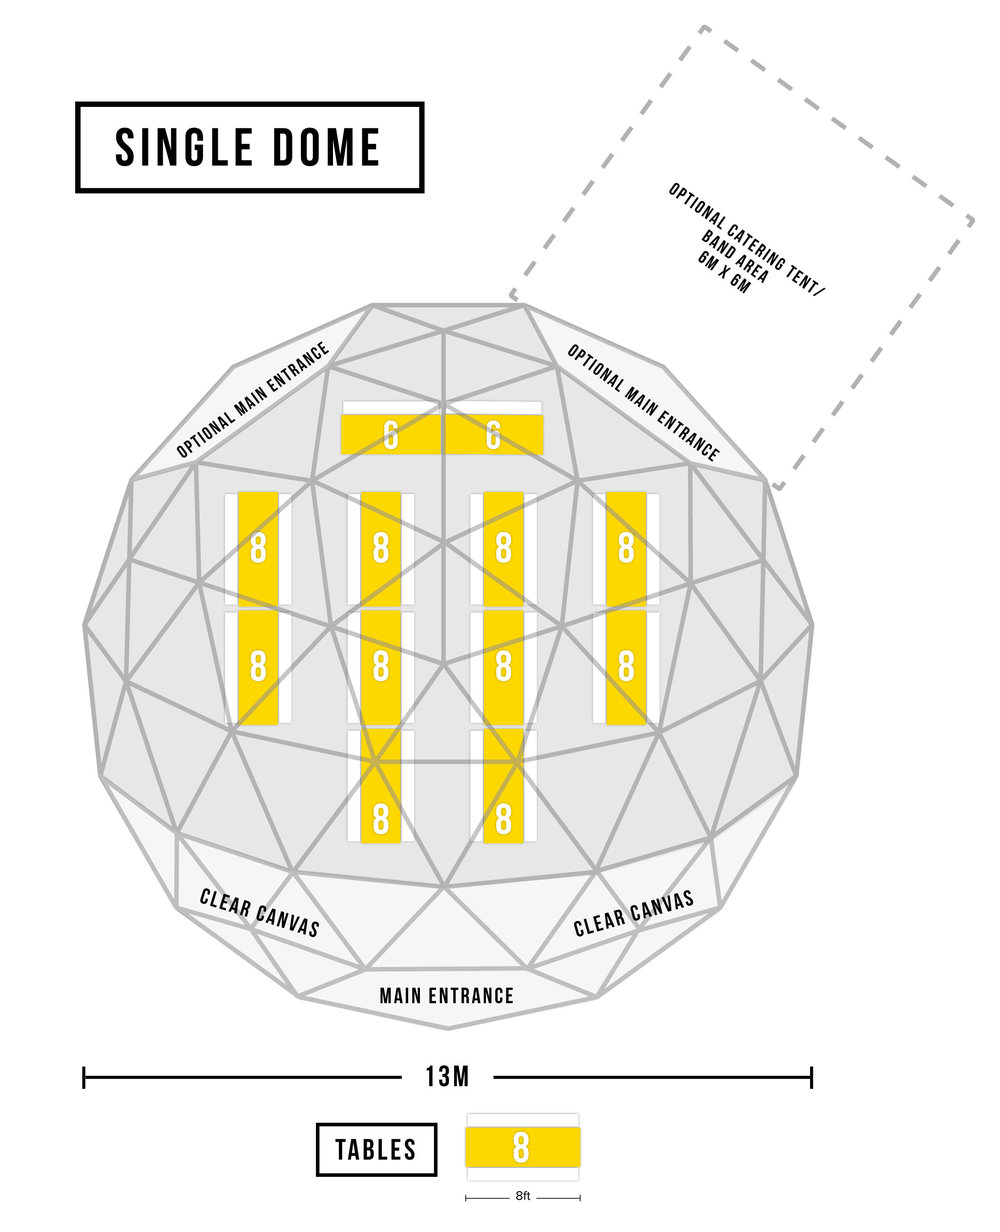 single dome floorplan 1